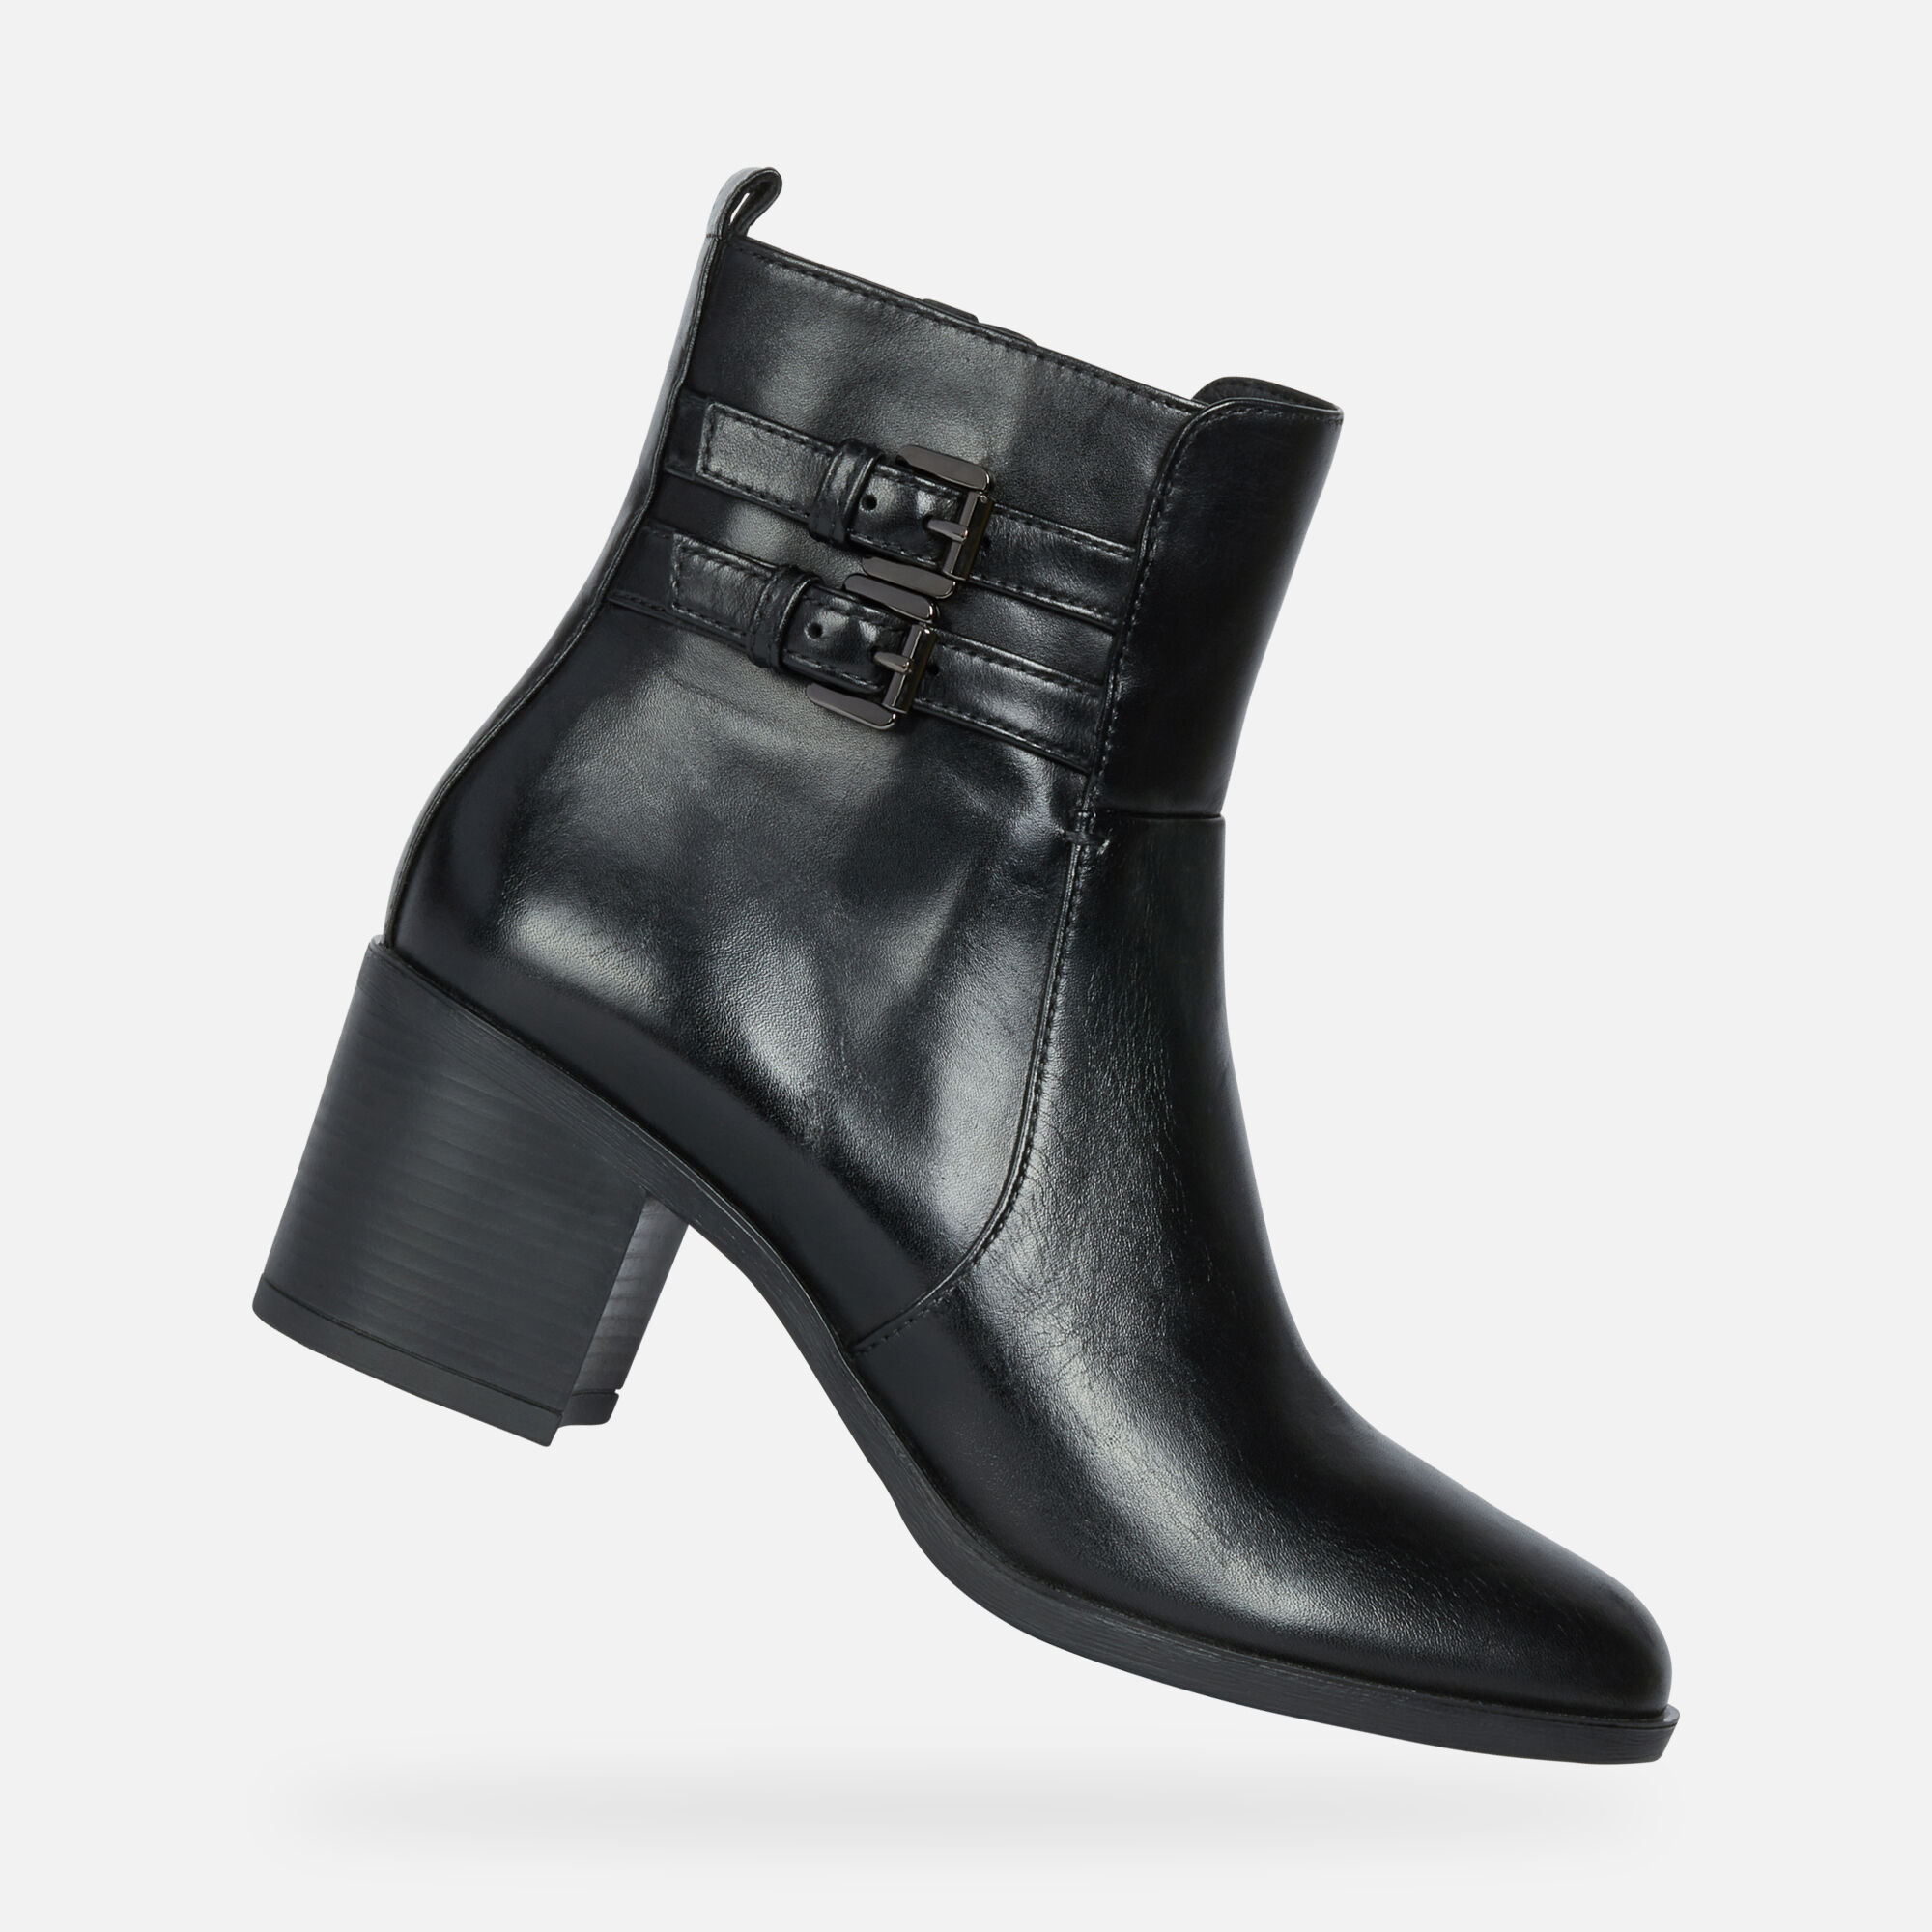 Geox GLYNNA Woman: Black Ankle Boots | Geox ® Official Store